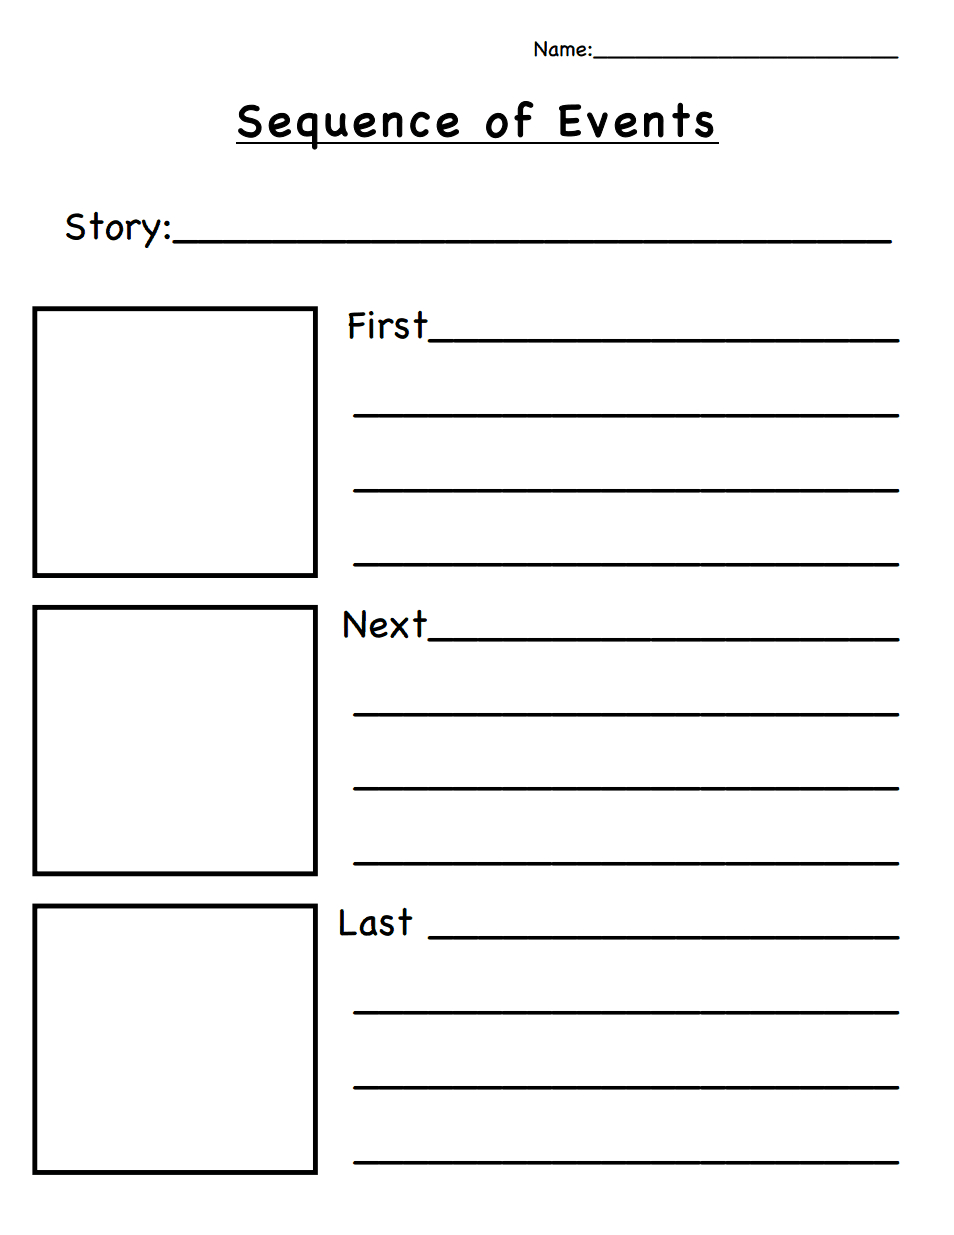 Sequence Of Events.pdf | Classroom Ideas | Story Sequencing - Free Printable Sequencing Worksheets 2Nd Grade